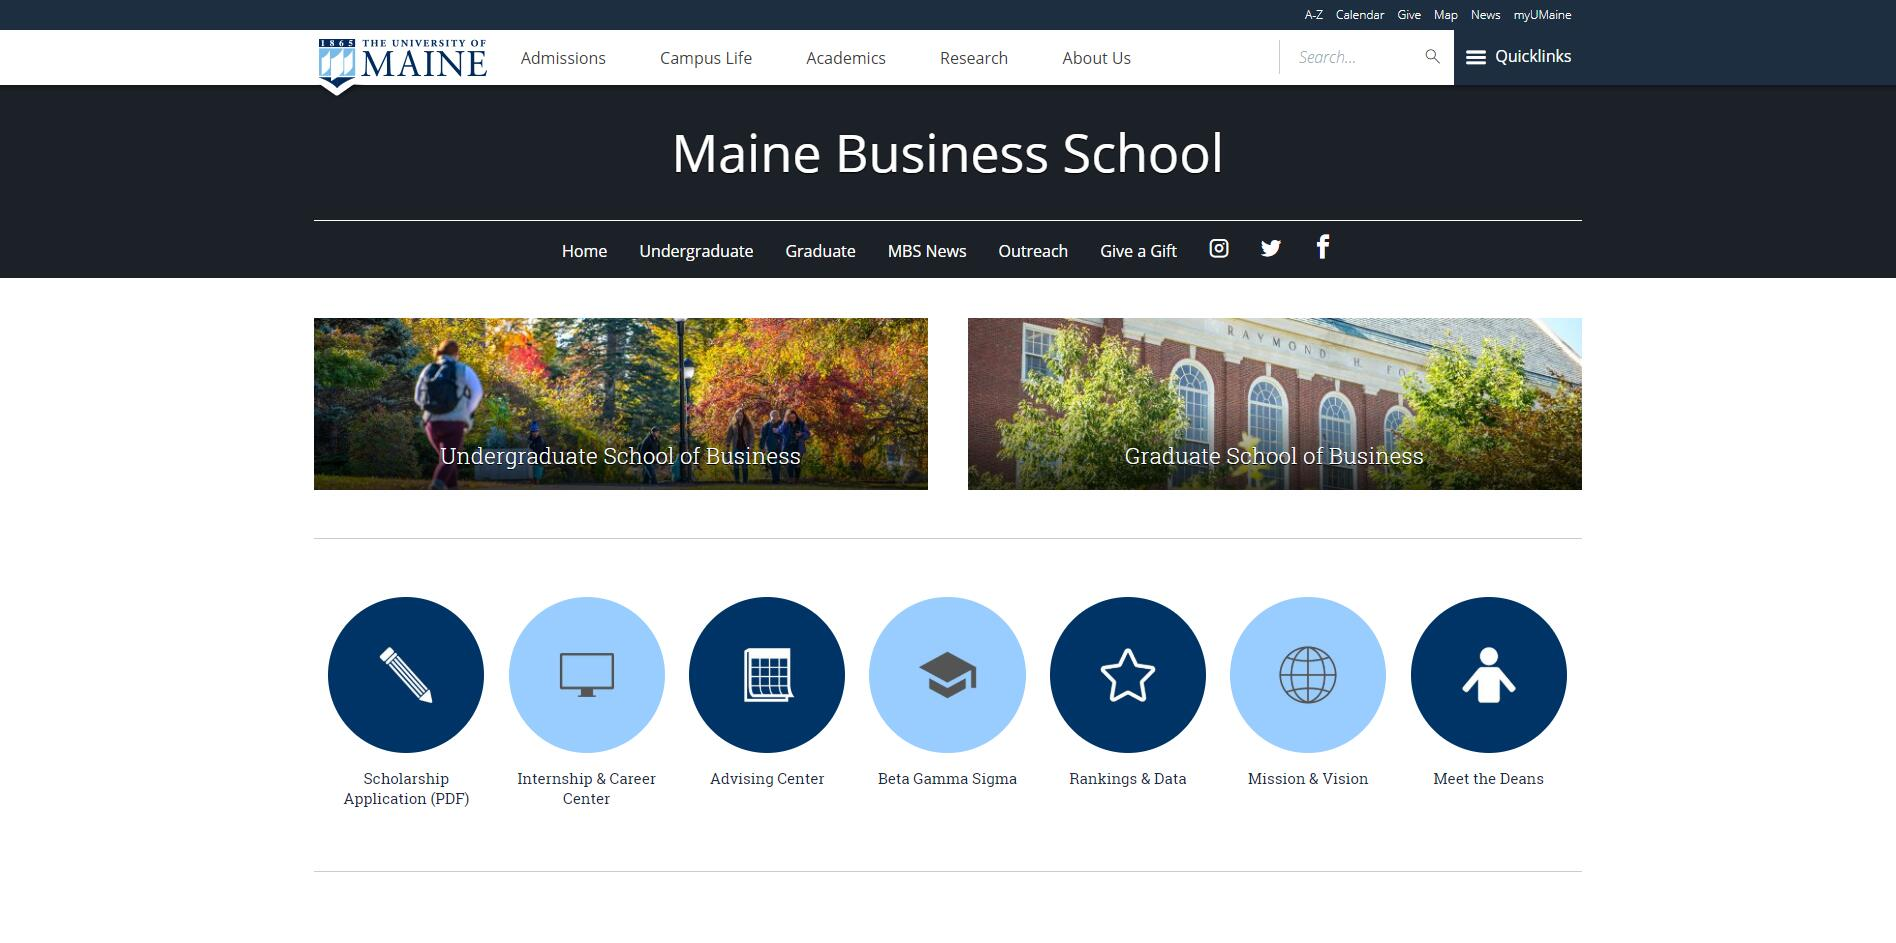 Top BBA Schools in Maine